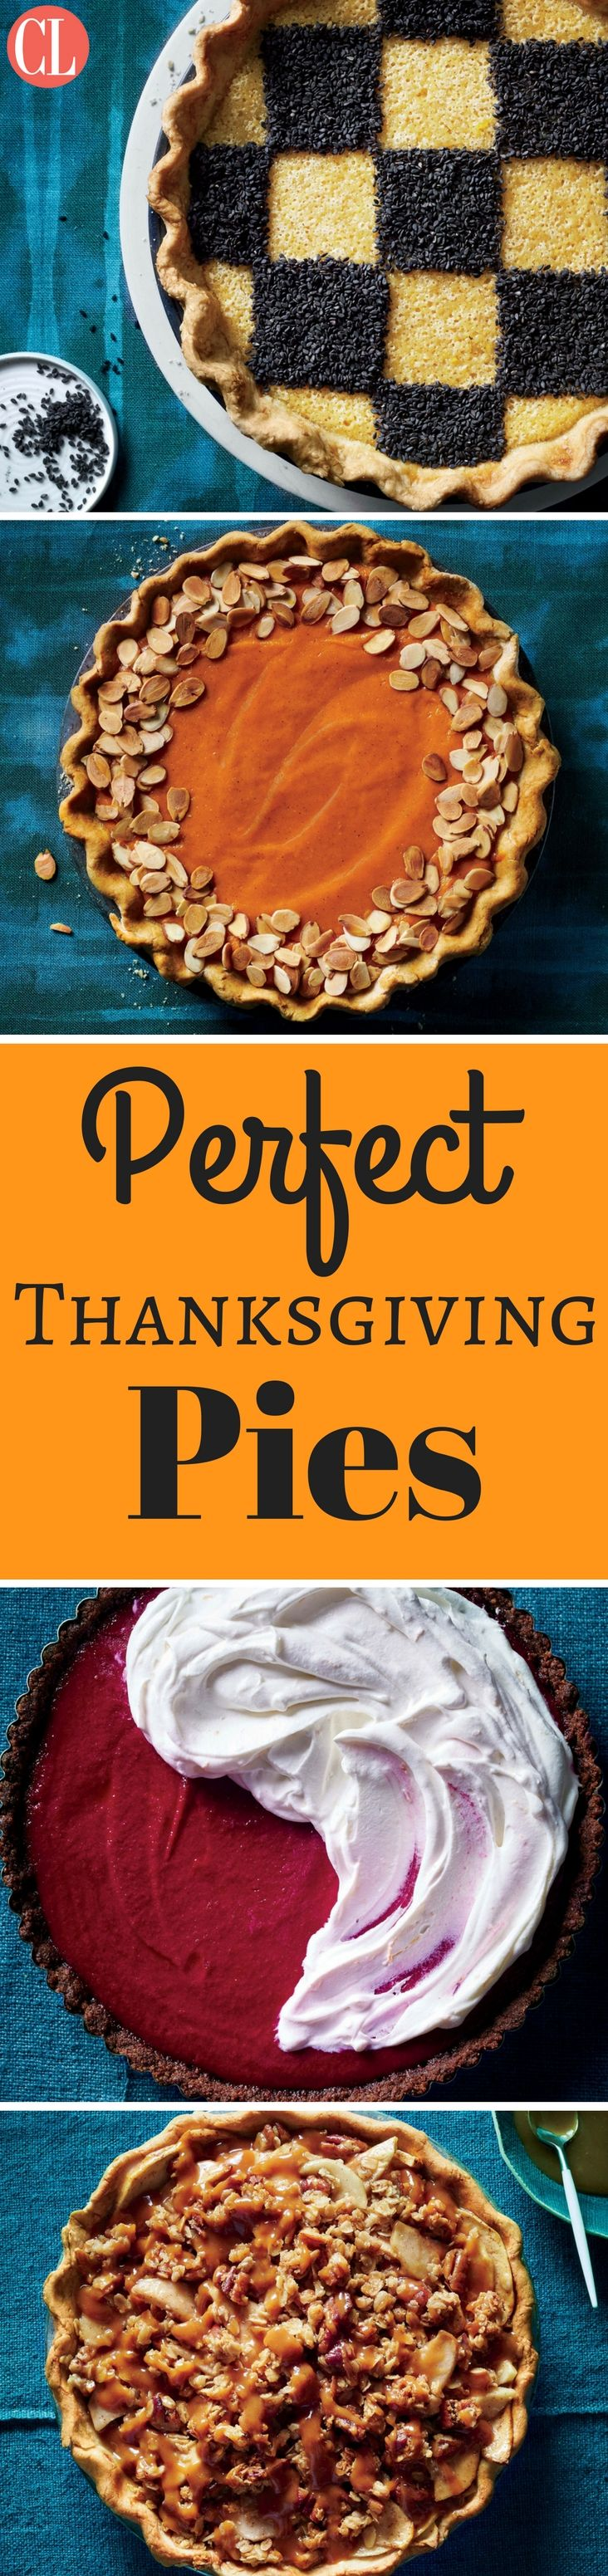 We took the classic pies and jazzed them up for a fun new take on Thanksgiving dessert. Everyone can enjoy these rich (yet light) desserts during the holiday. | Cooking Light